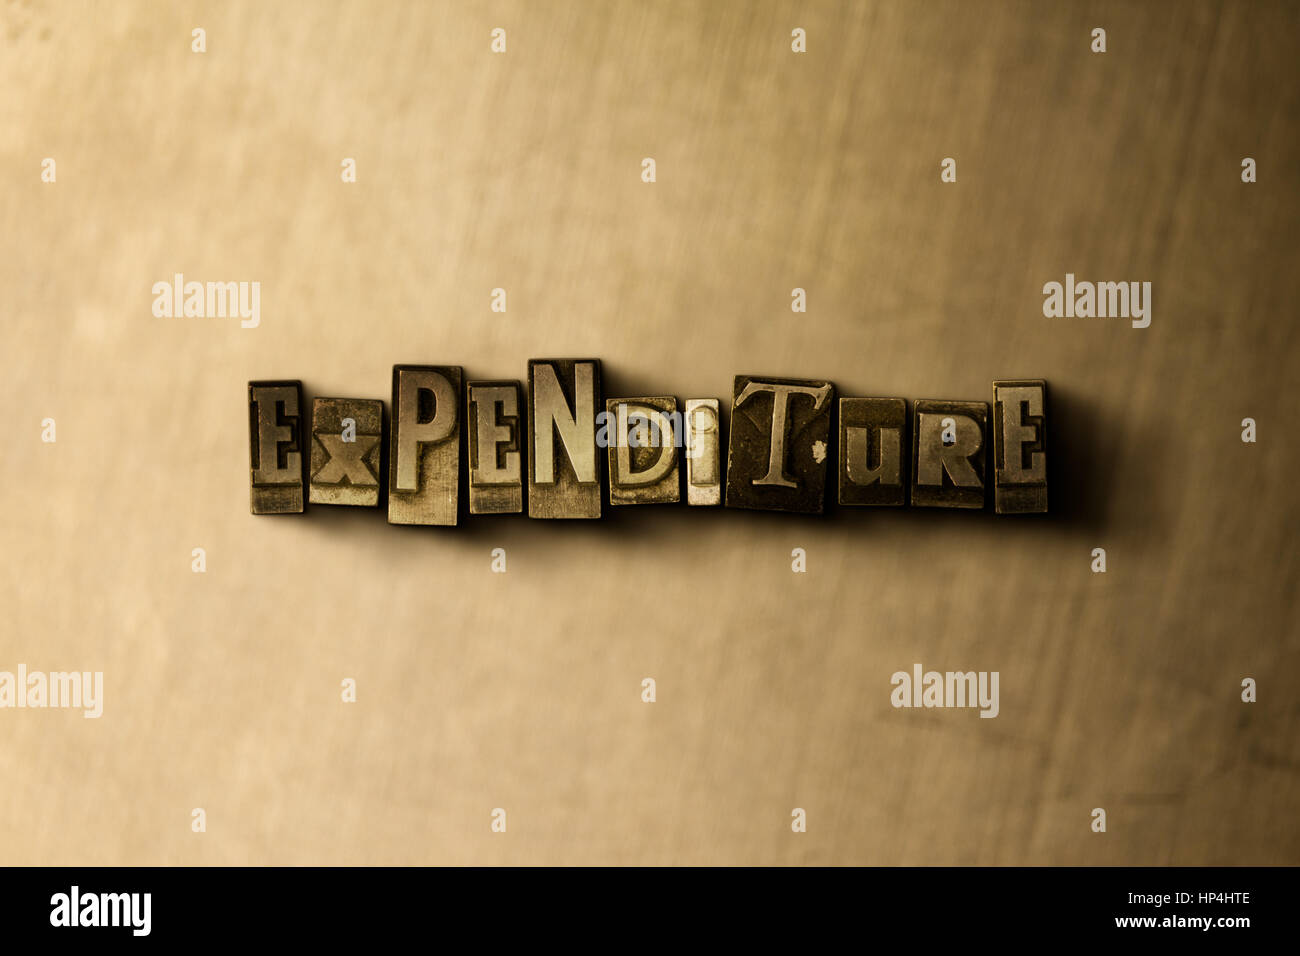 EXPENDITURE - close-up of grungy vintage typeset word on metal backdrop. Royalty free stock illustration.  Can be Stock Photo